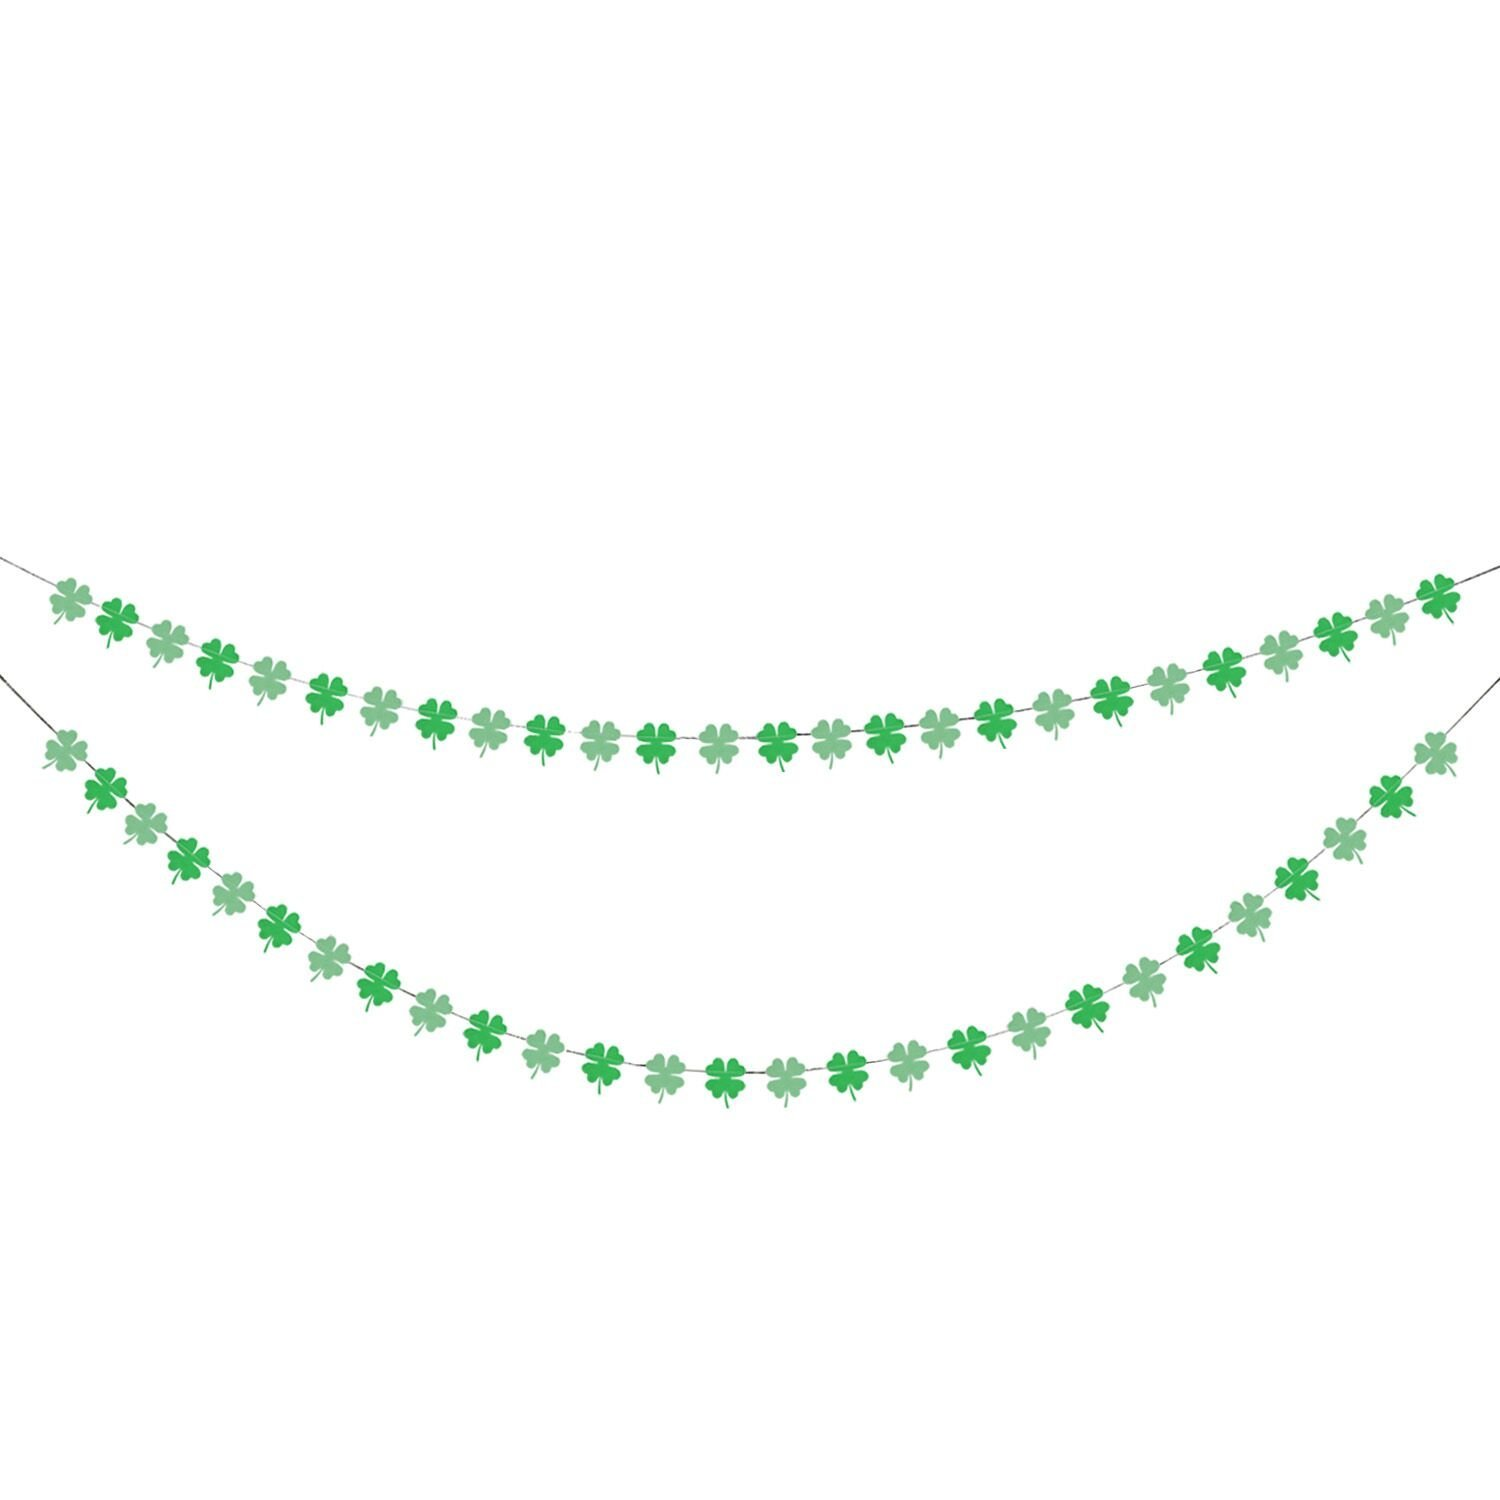 Paper Shamrock Clover Garland Banner - St. Patrick 's Day Banner Decor - St. Patrick 's Day Garland Decorations - Irish Party Supplies - Green and Light Green Color